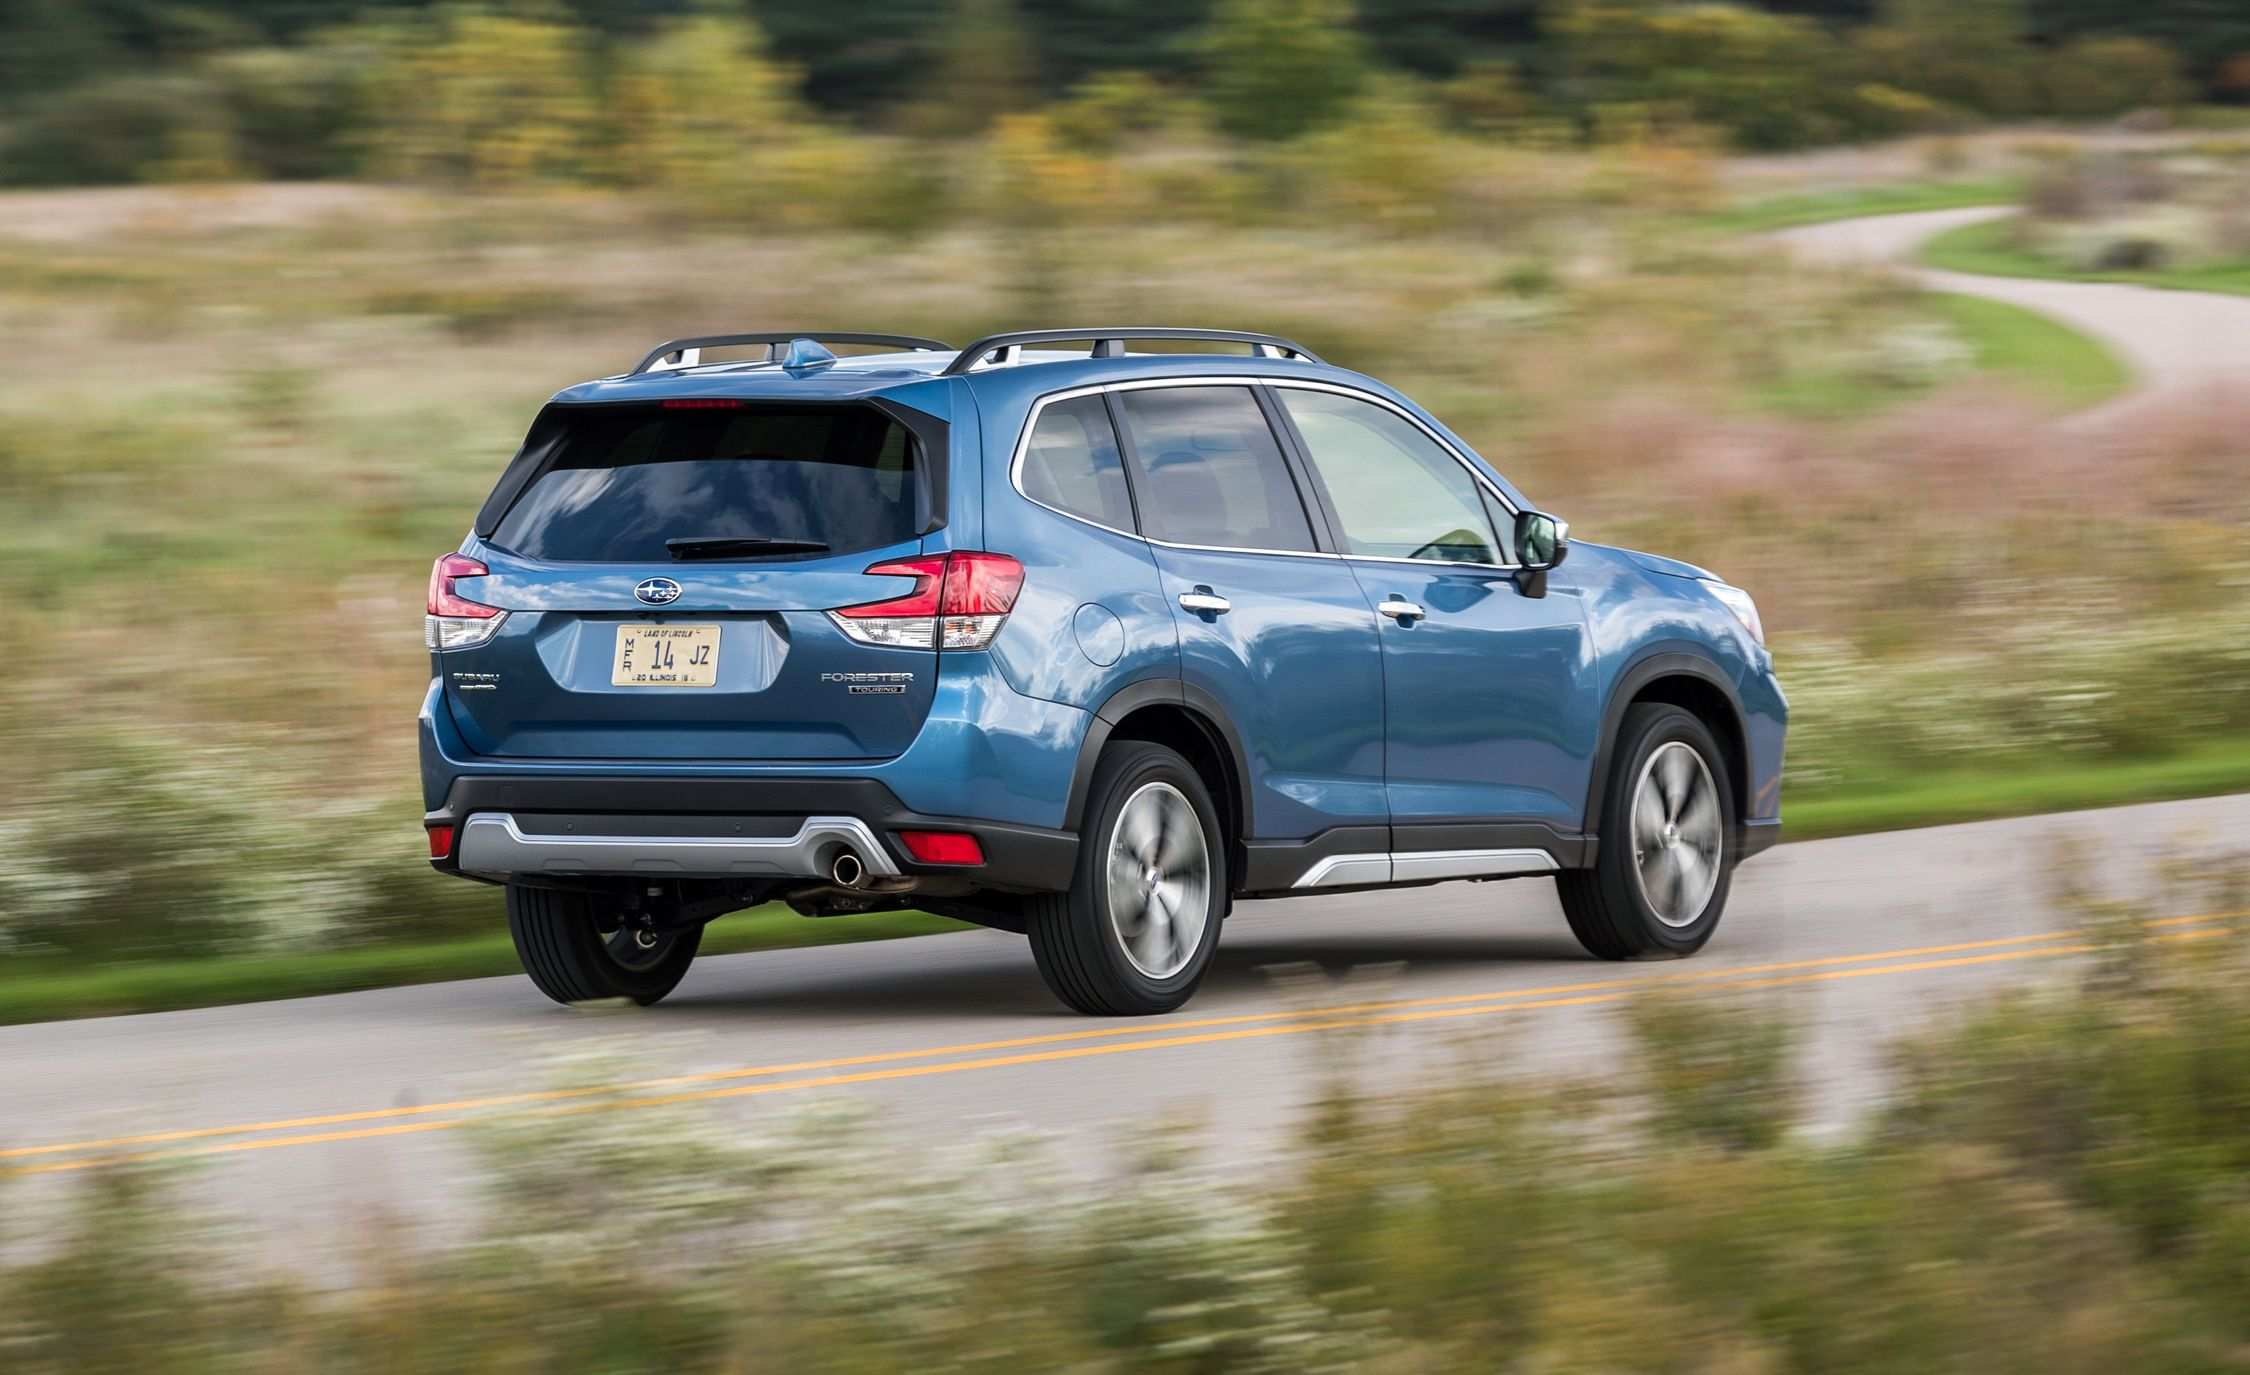 98 The 2019 Subaru Forester Design Price Design And Review